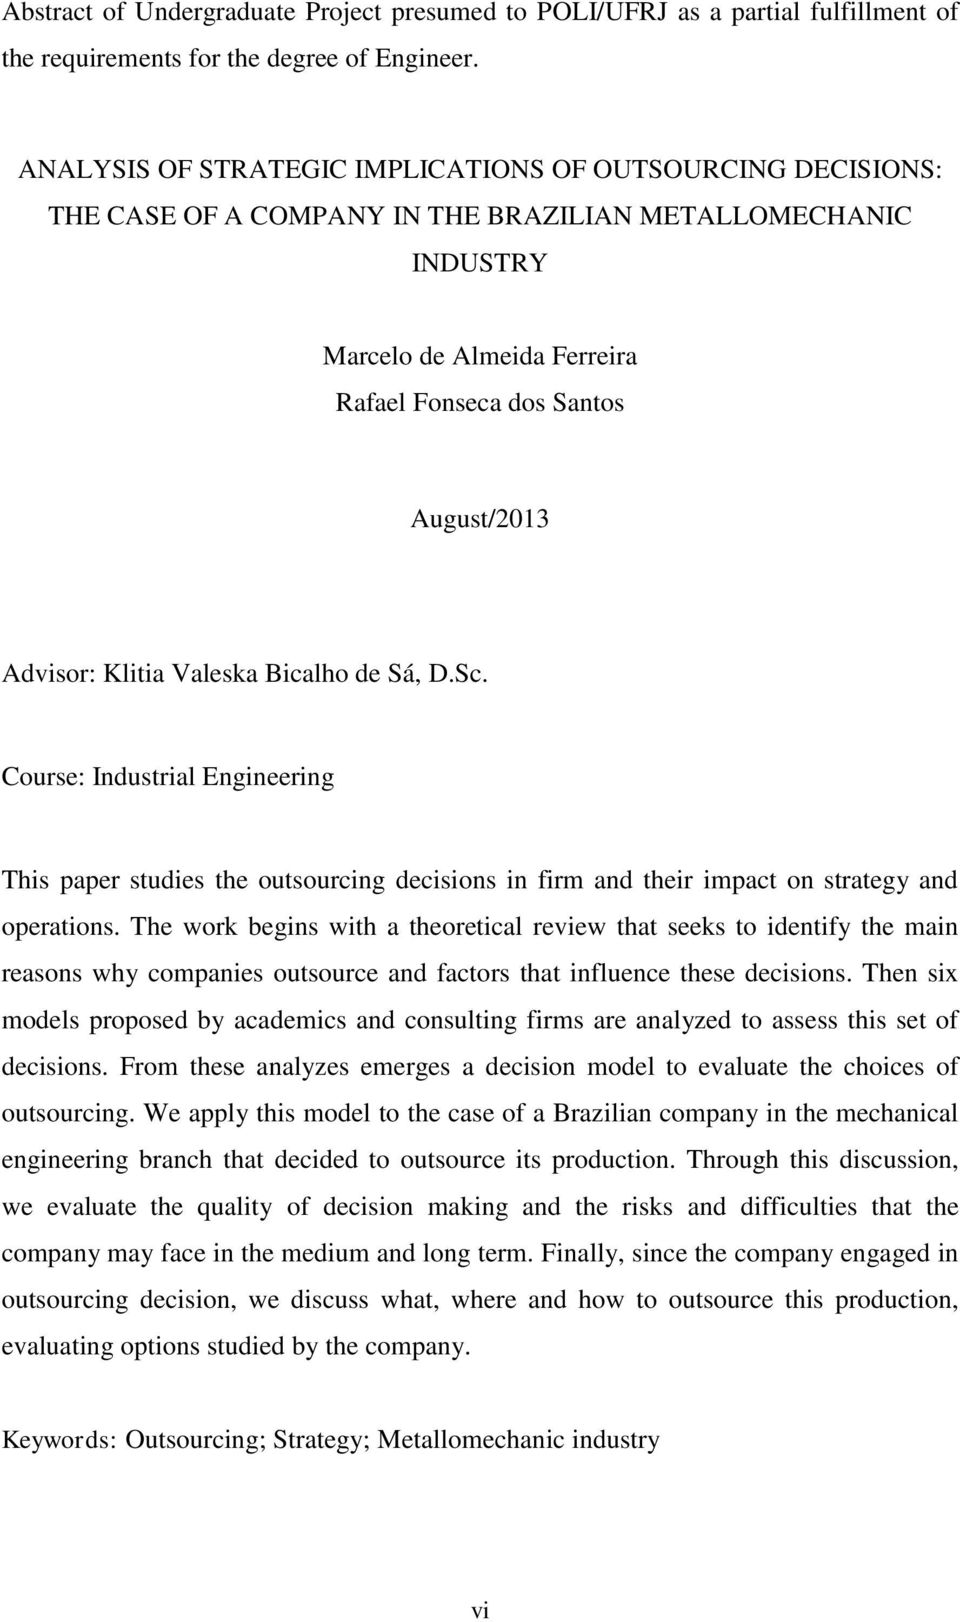 Klitia Valeska Bicalho de Sá, D.Sc. Course: Industrial Engineering This paper studies the outsourcing decisions in firm and their impact on strategy and operations.